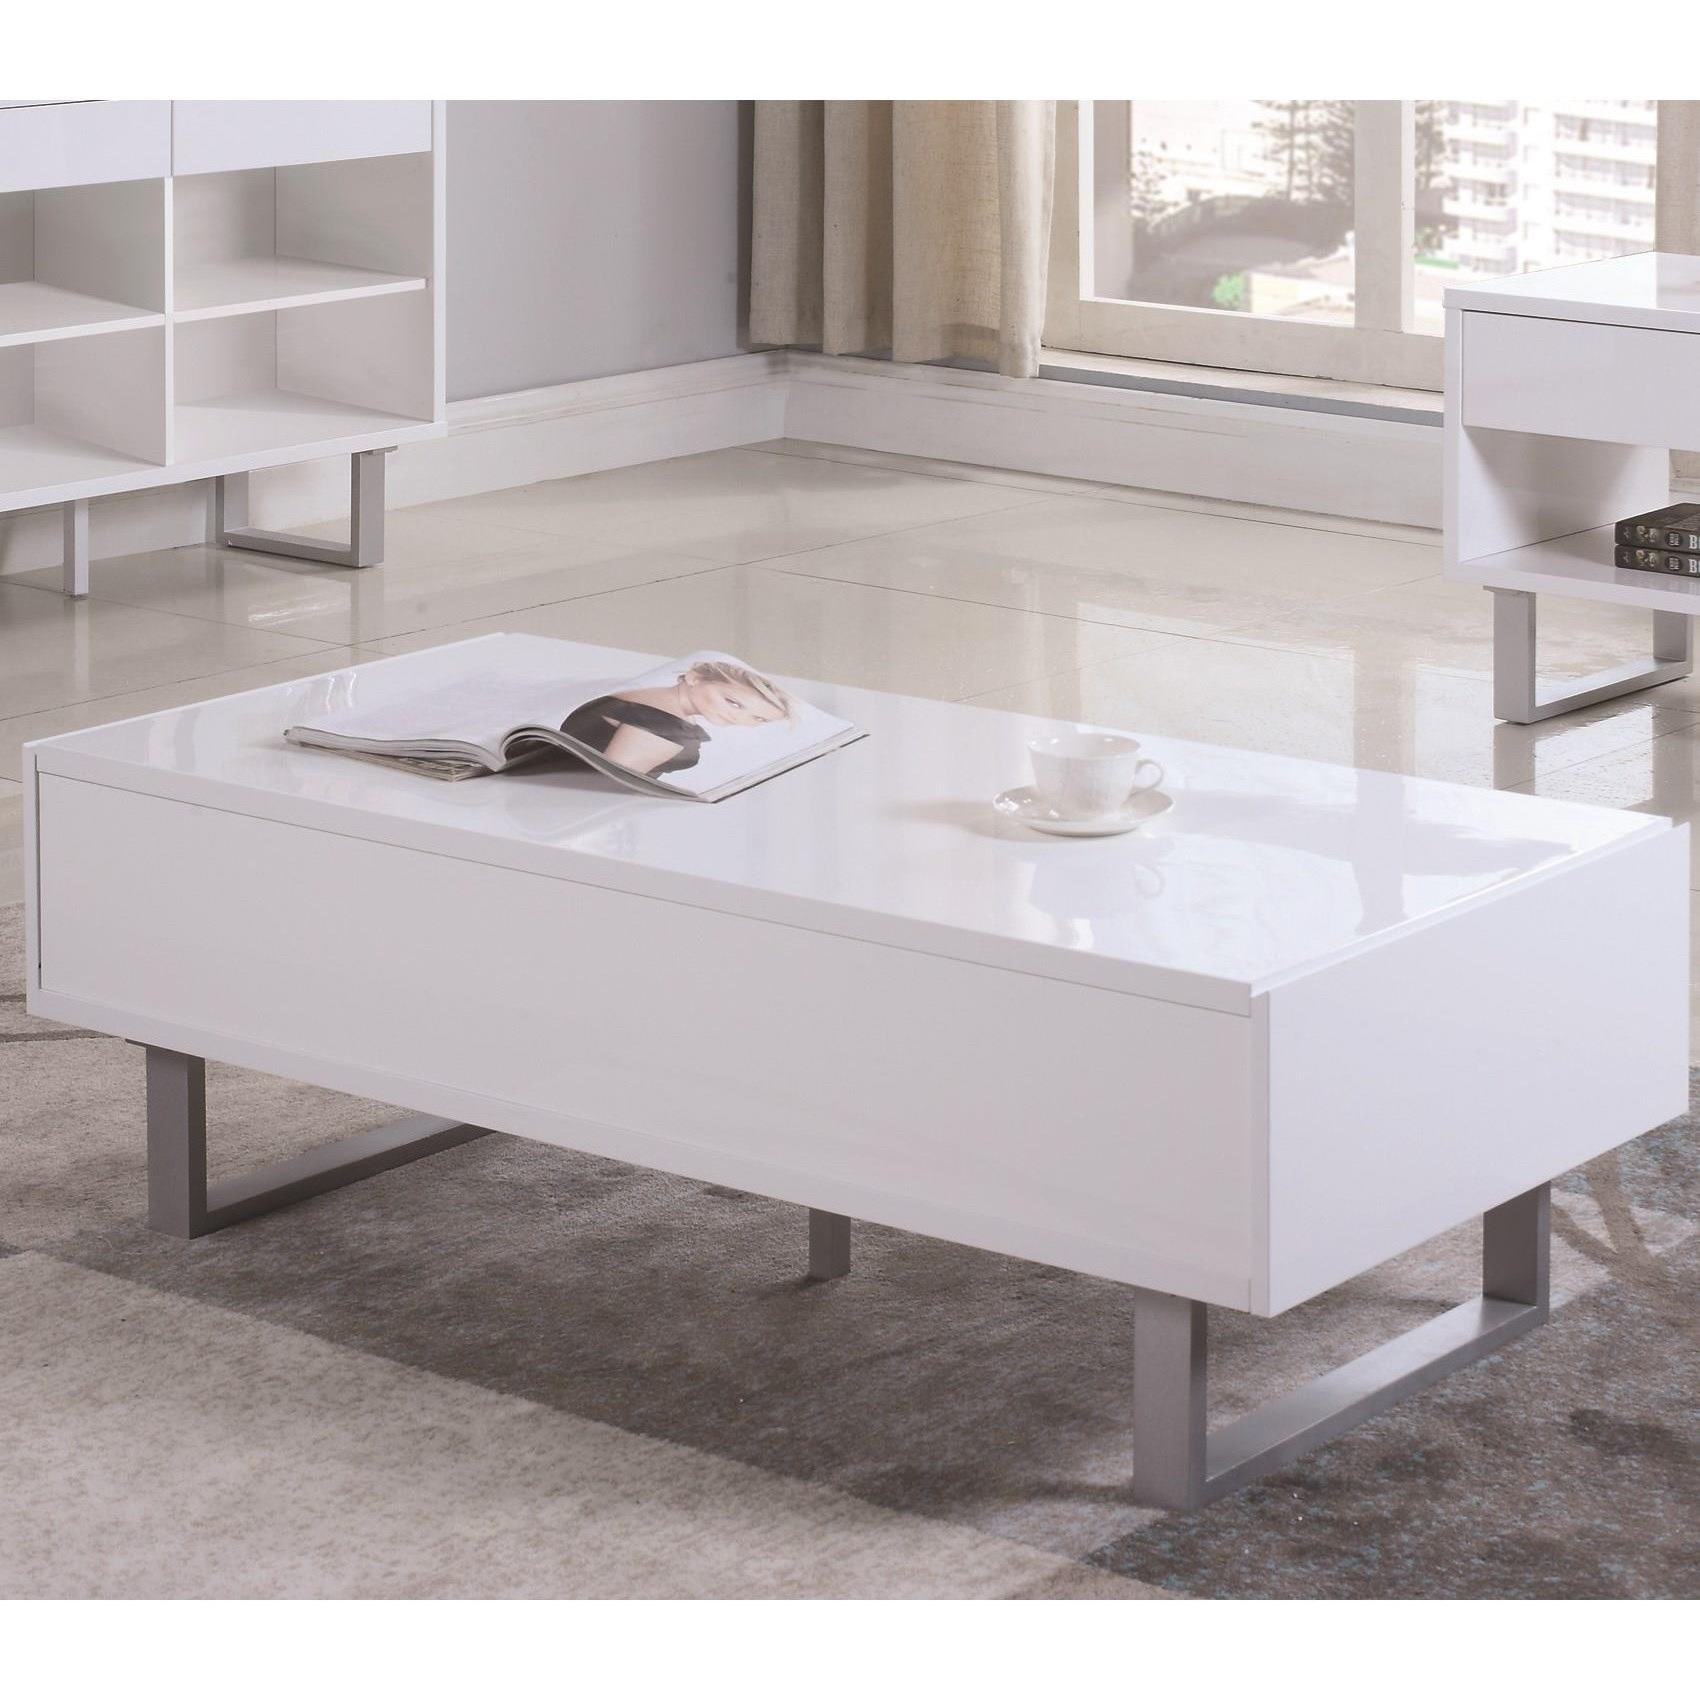 70569 Coffee Table by Coaster at Rife's Home Furniture